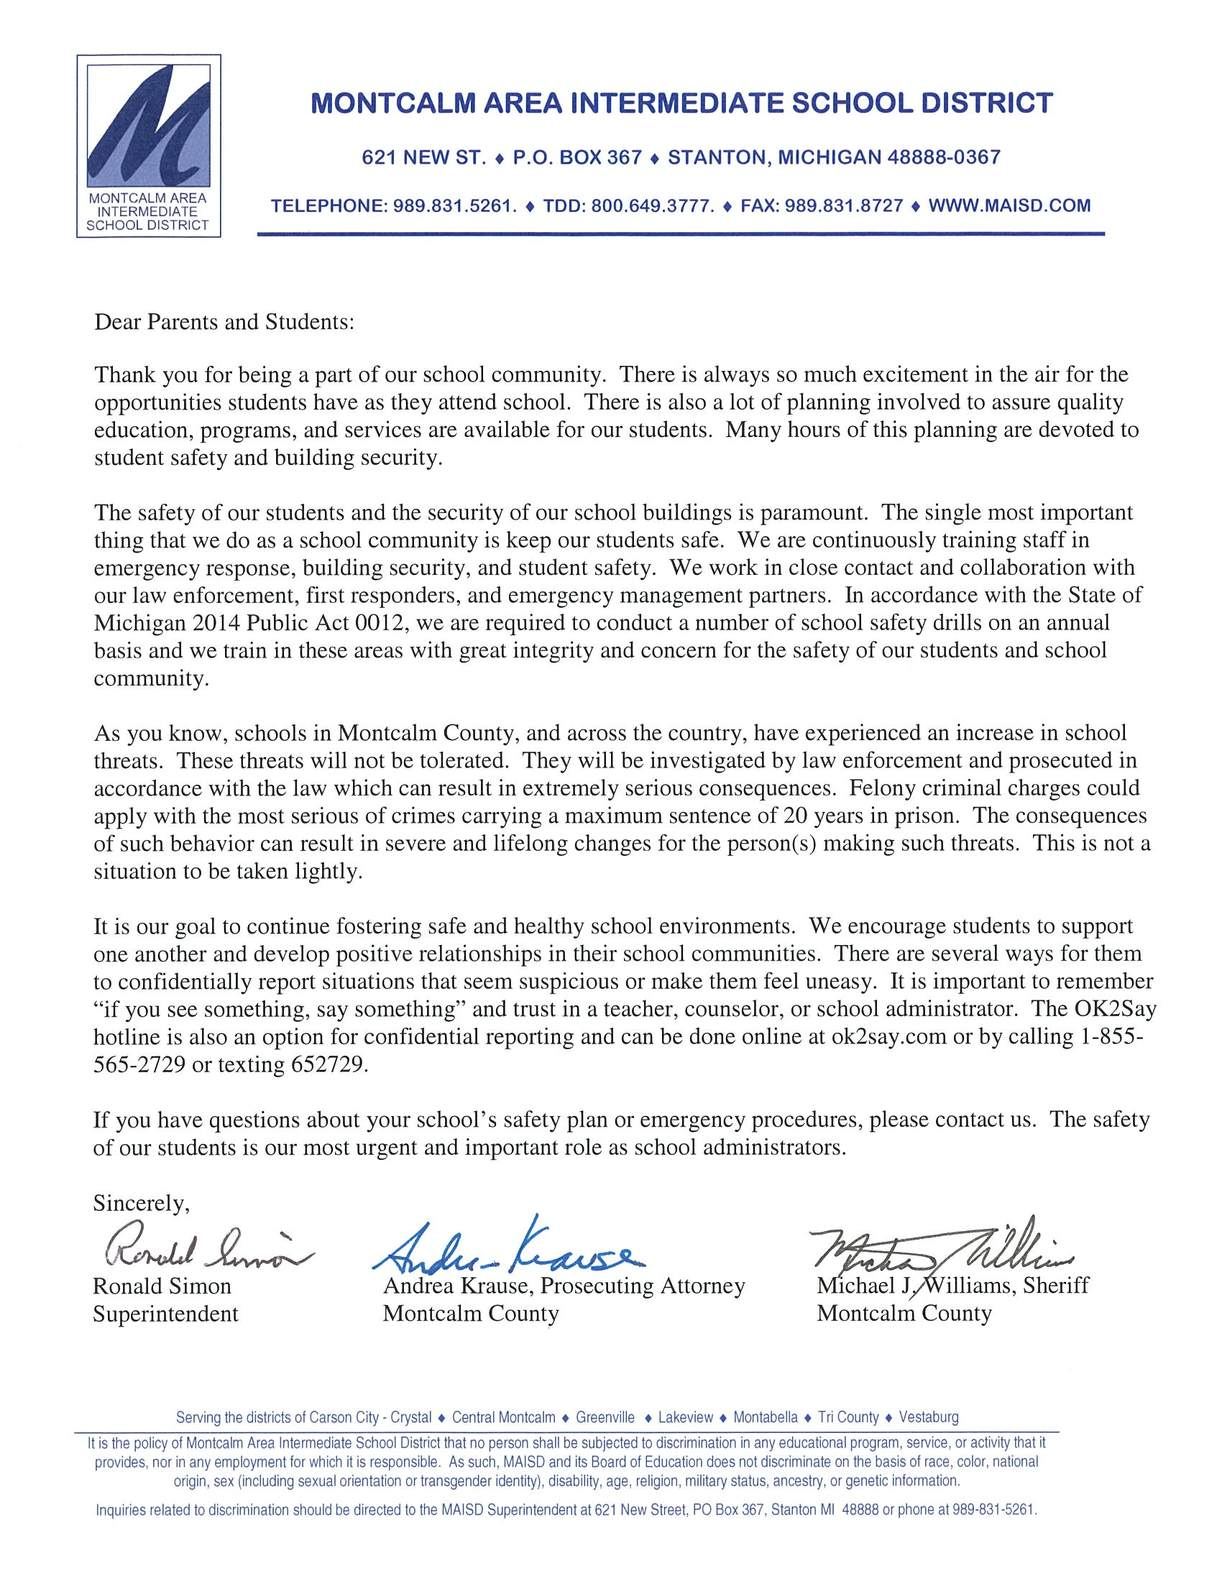 A letter to our community regarding student and building safety.